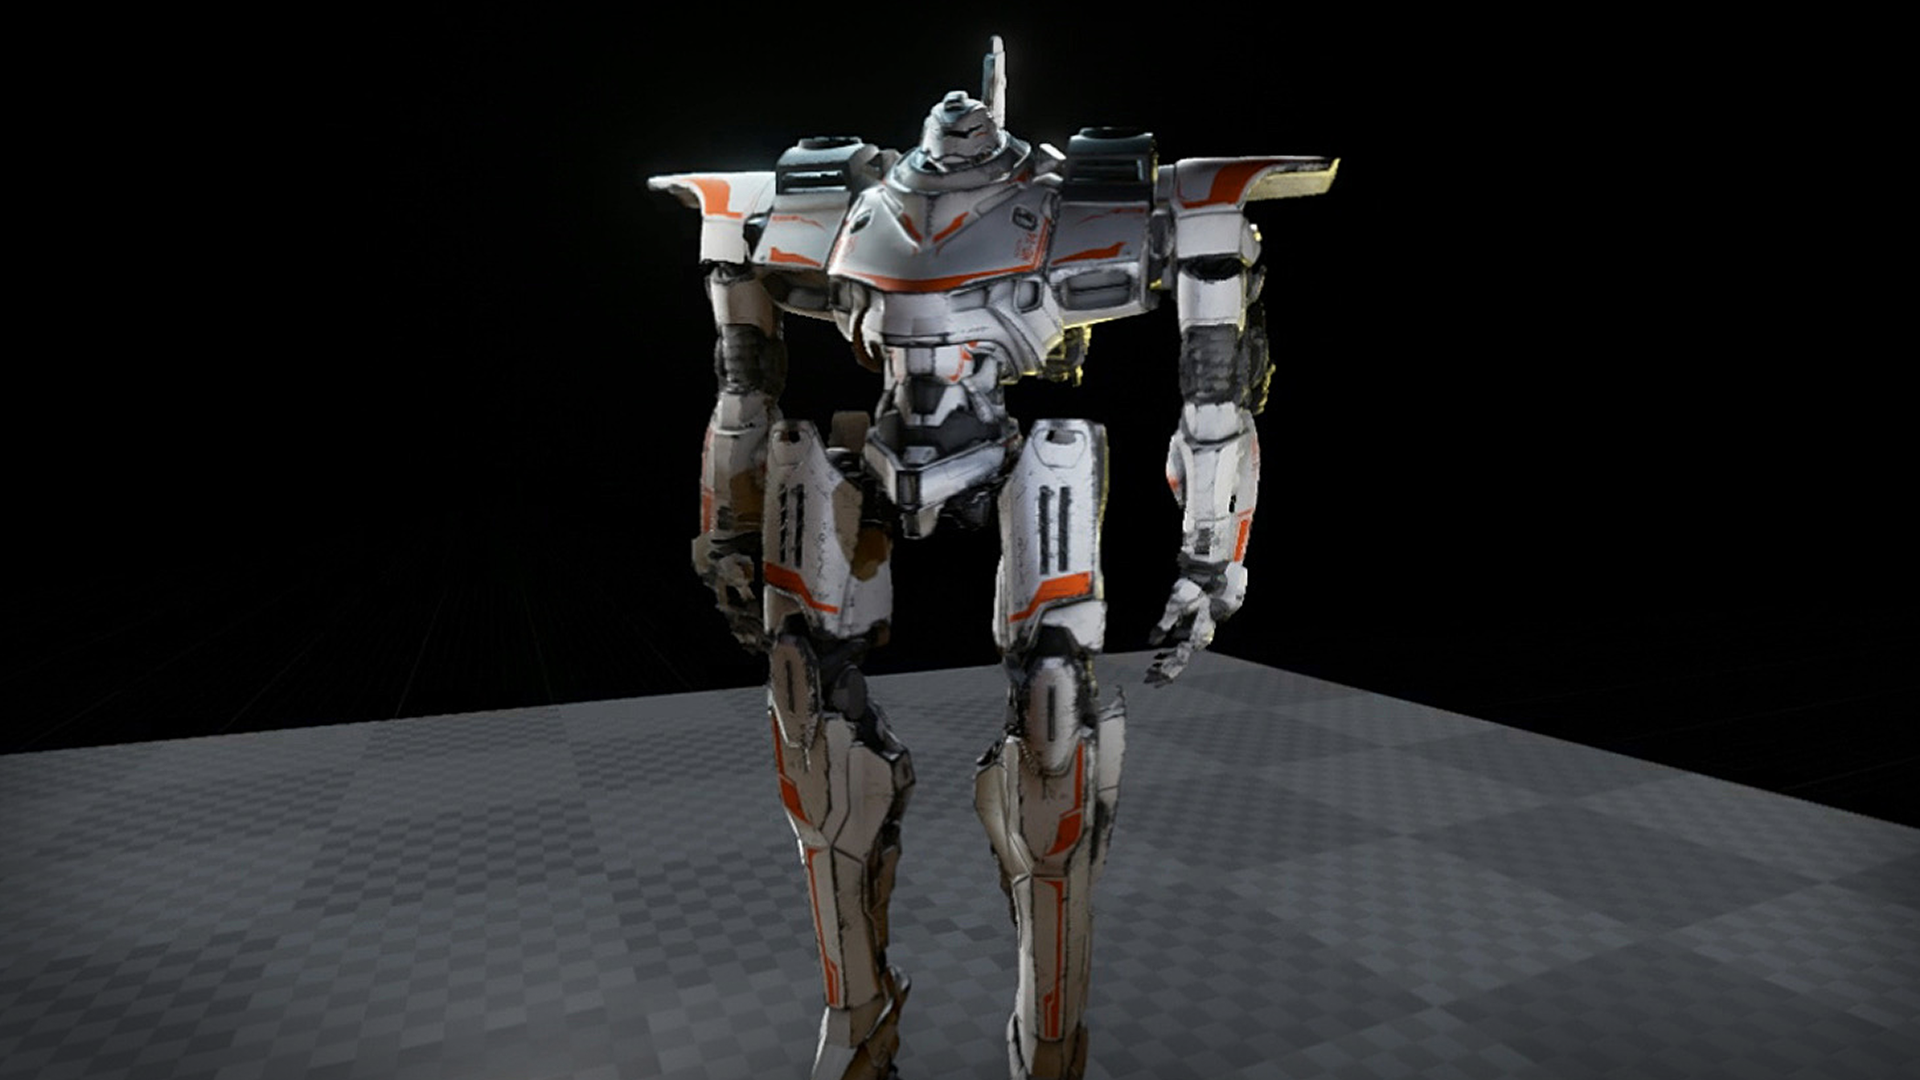 Z-Mech Robot Giant by ModelWorks in Characters - UE4 Marketplace